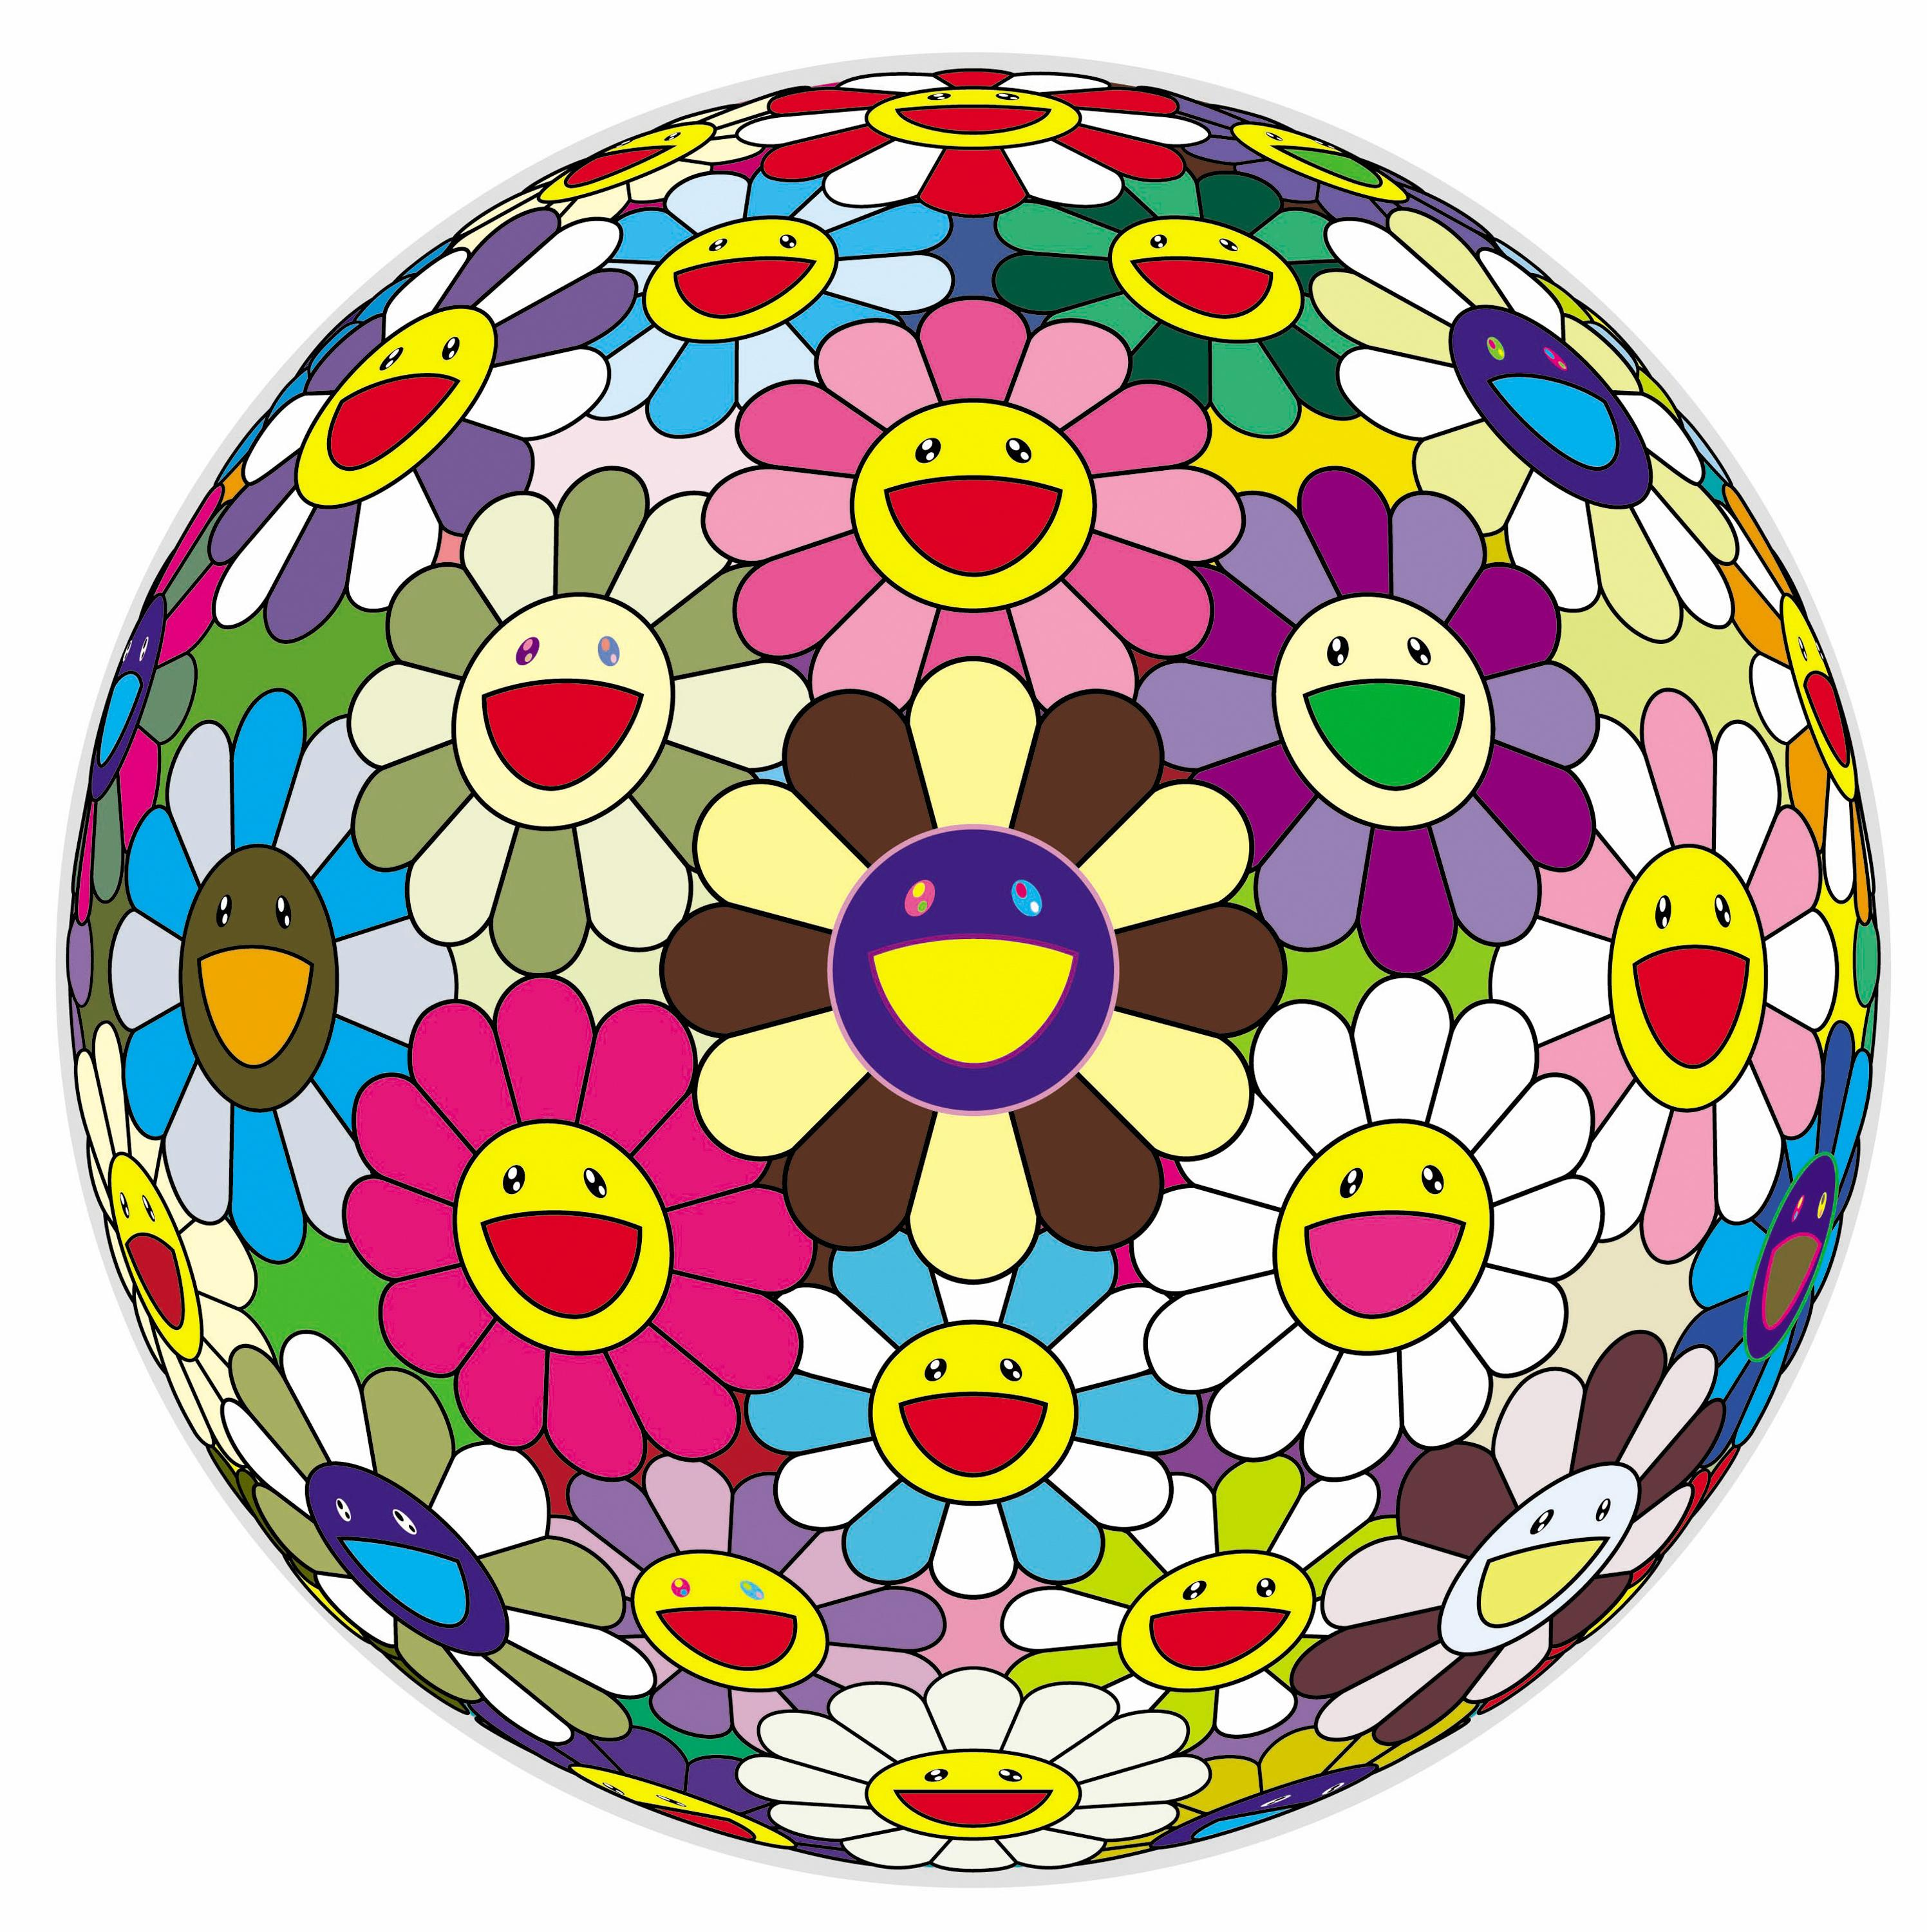 A sphere is covered with illustrated flowers with joyous faces in various colors.